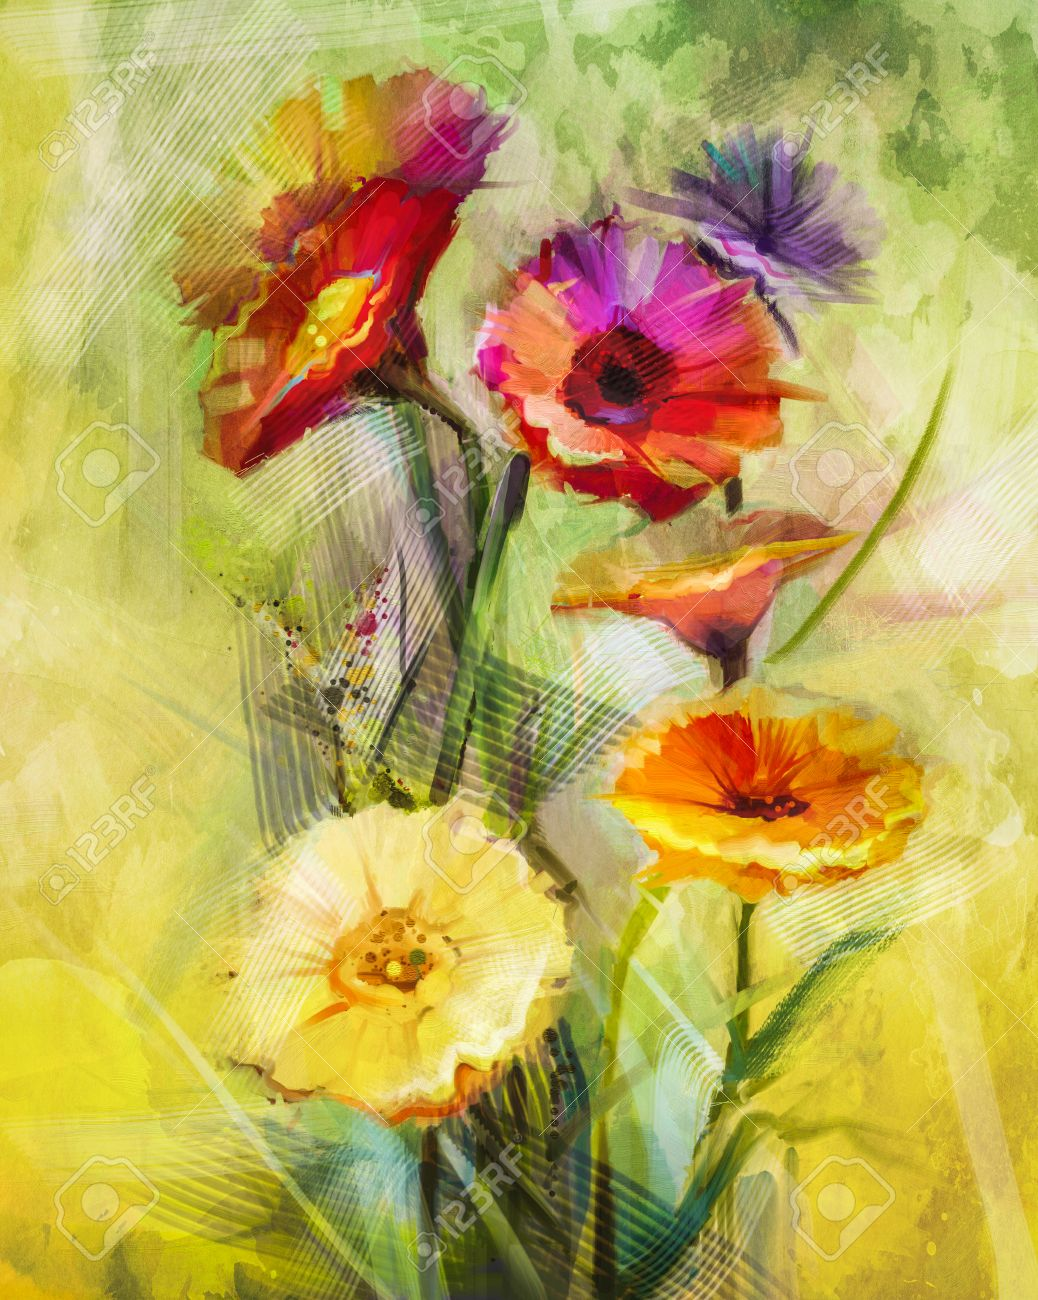 Flower Painting Stock Photos. Royalty Free Flower Painting Images